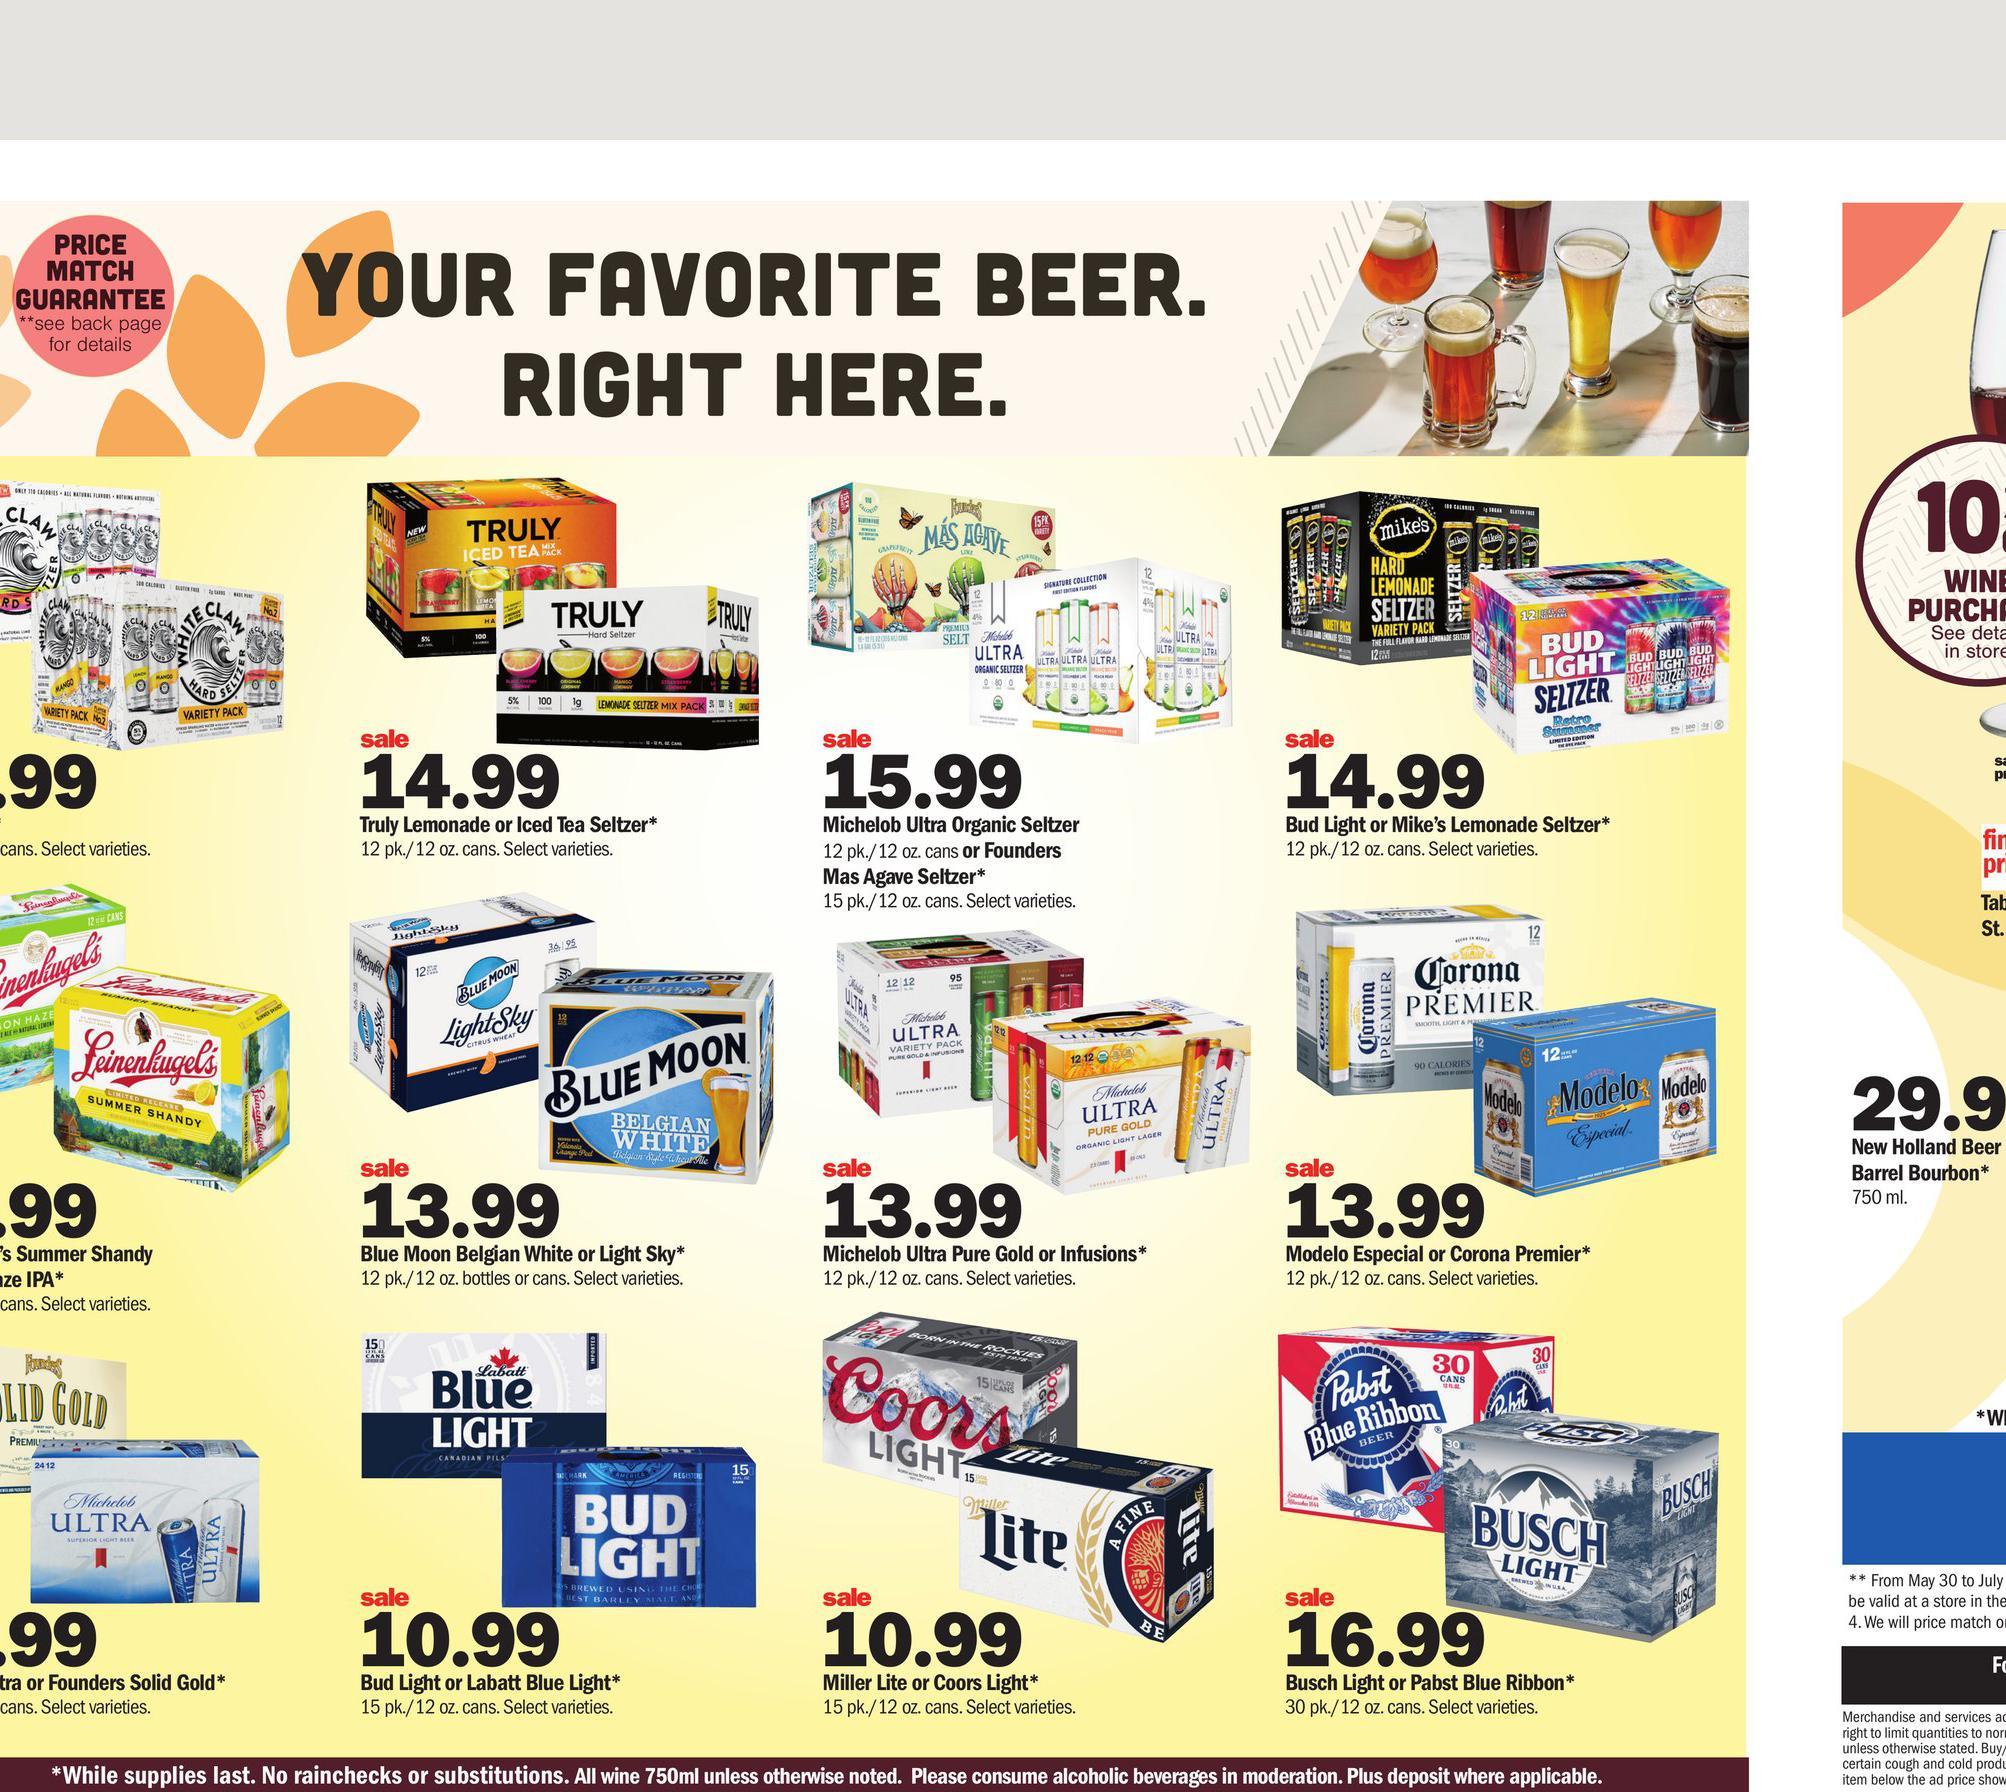 11.07.2021 Meijer ad 5. page